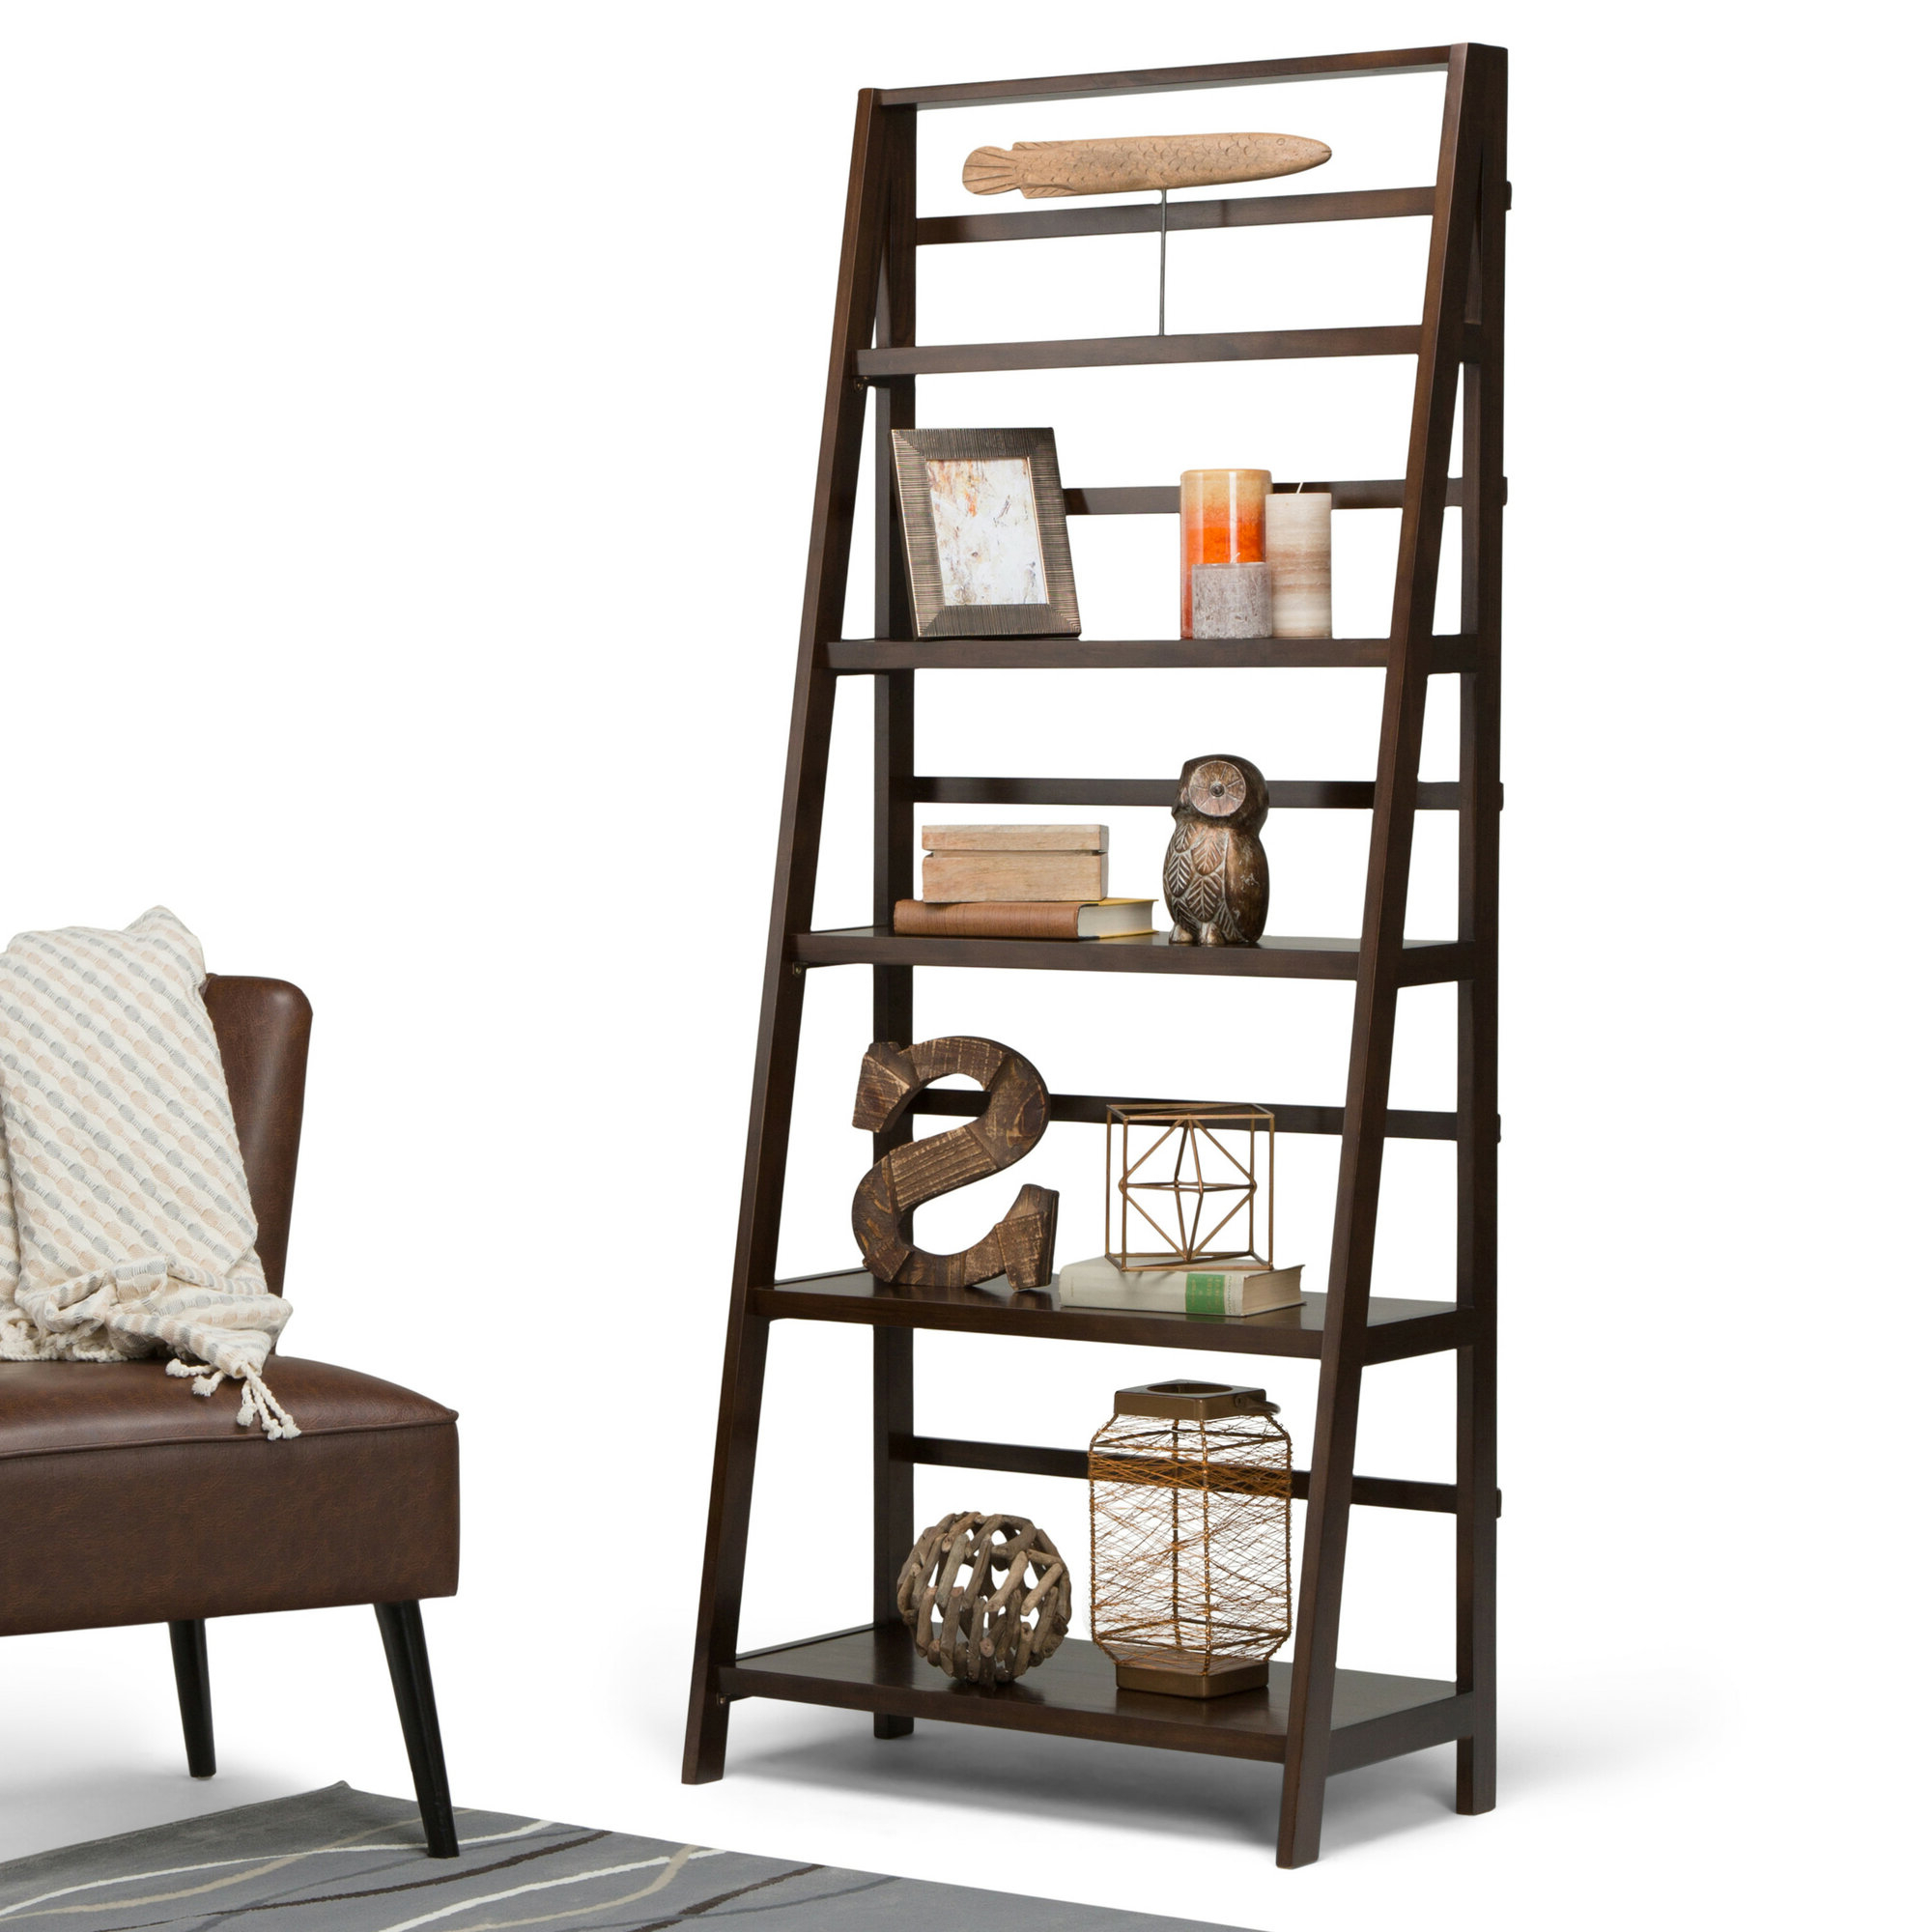 2019 Mayna Ladder Bookcases Inside Details About Alcott Hill Mayna Ladder Bookcase (View 1 of 20)